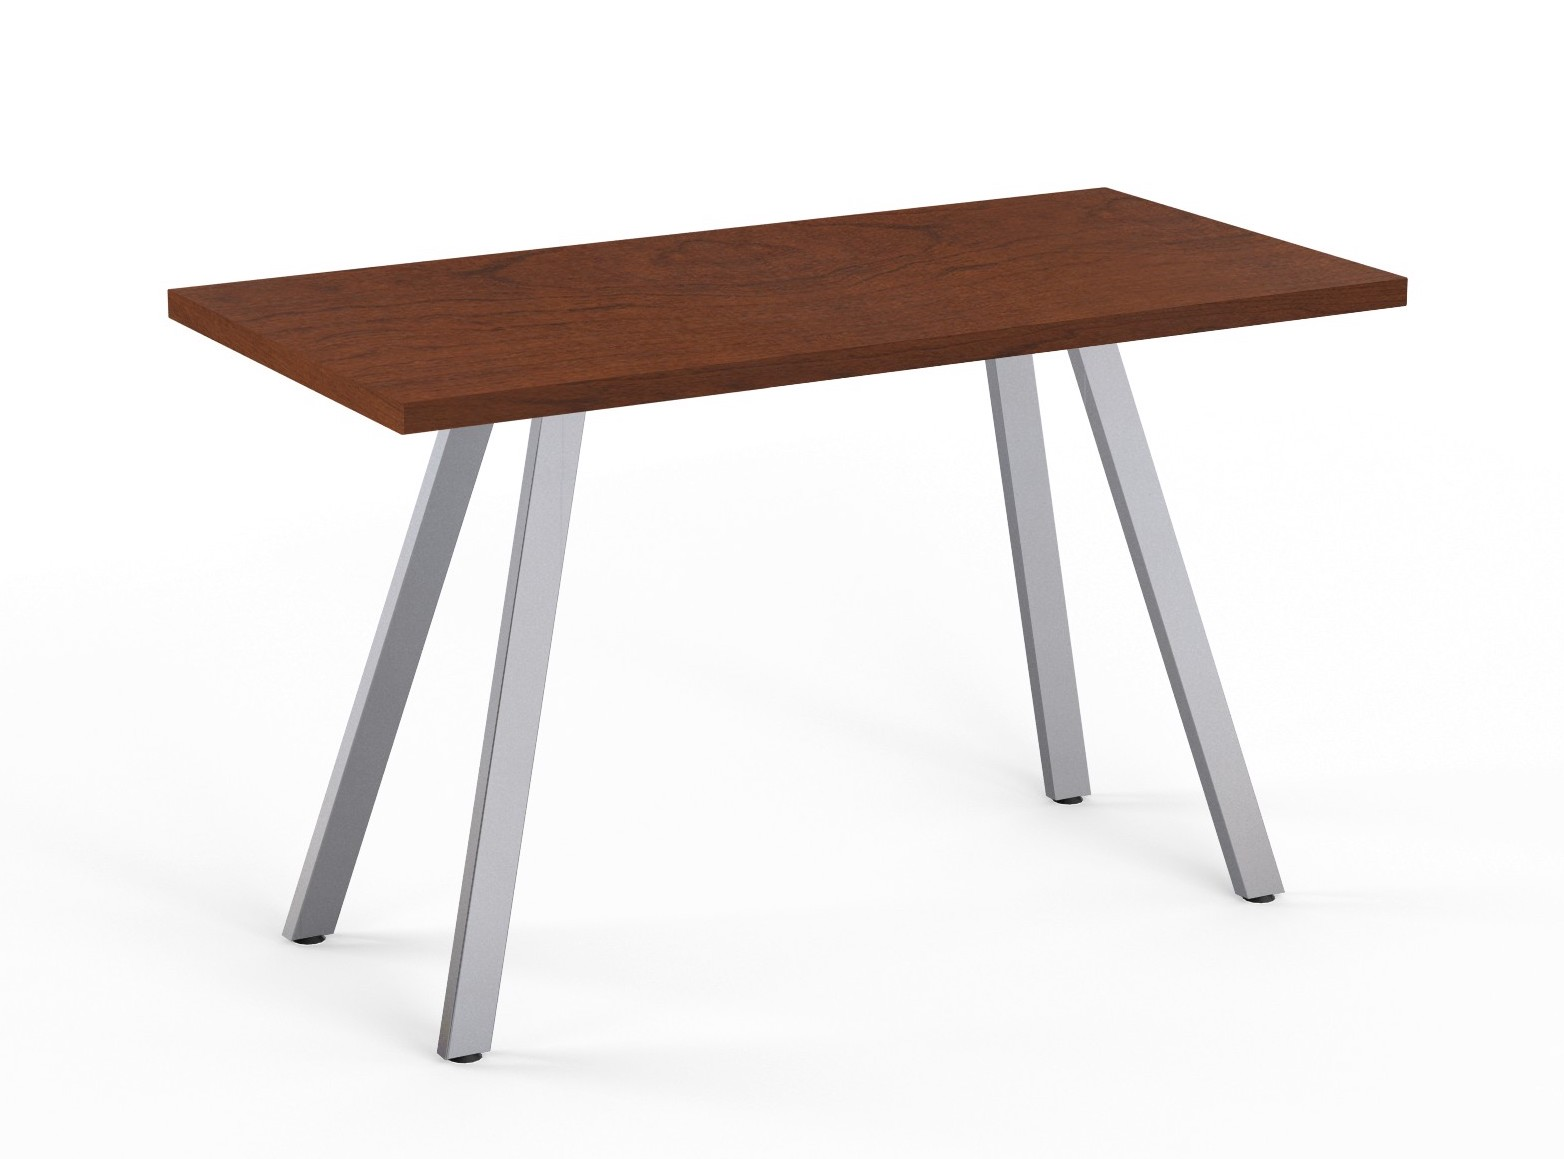 mahogany aim table by special-t